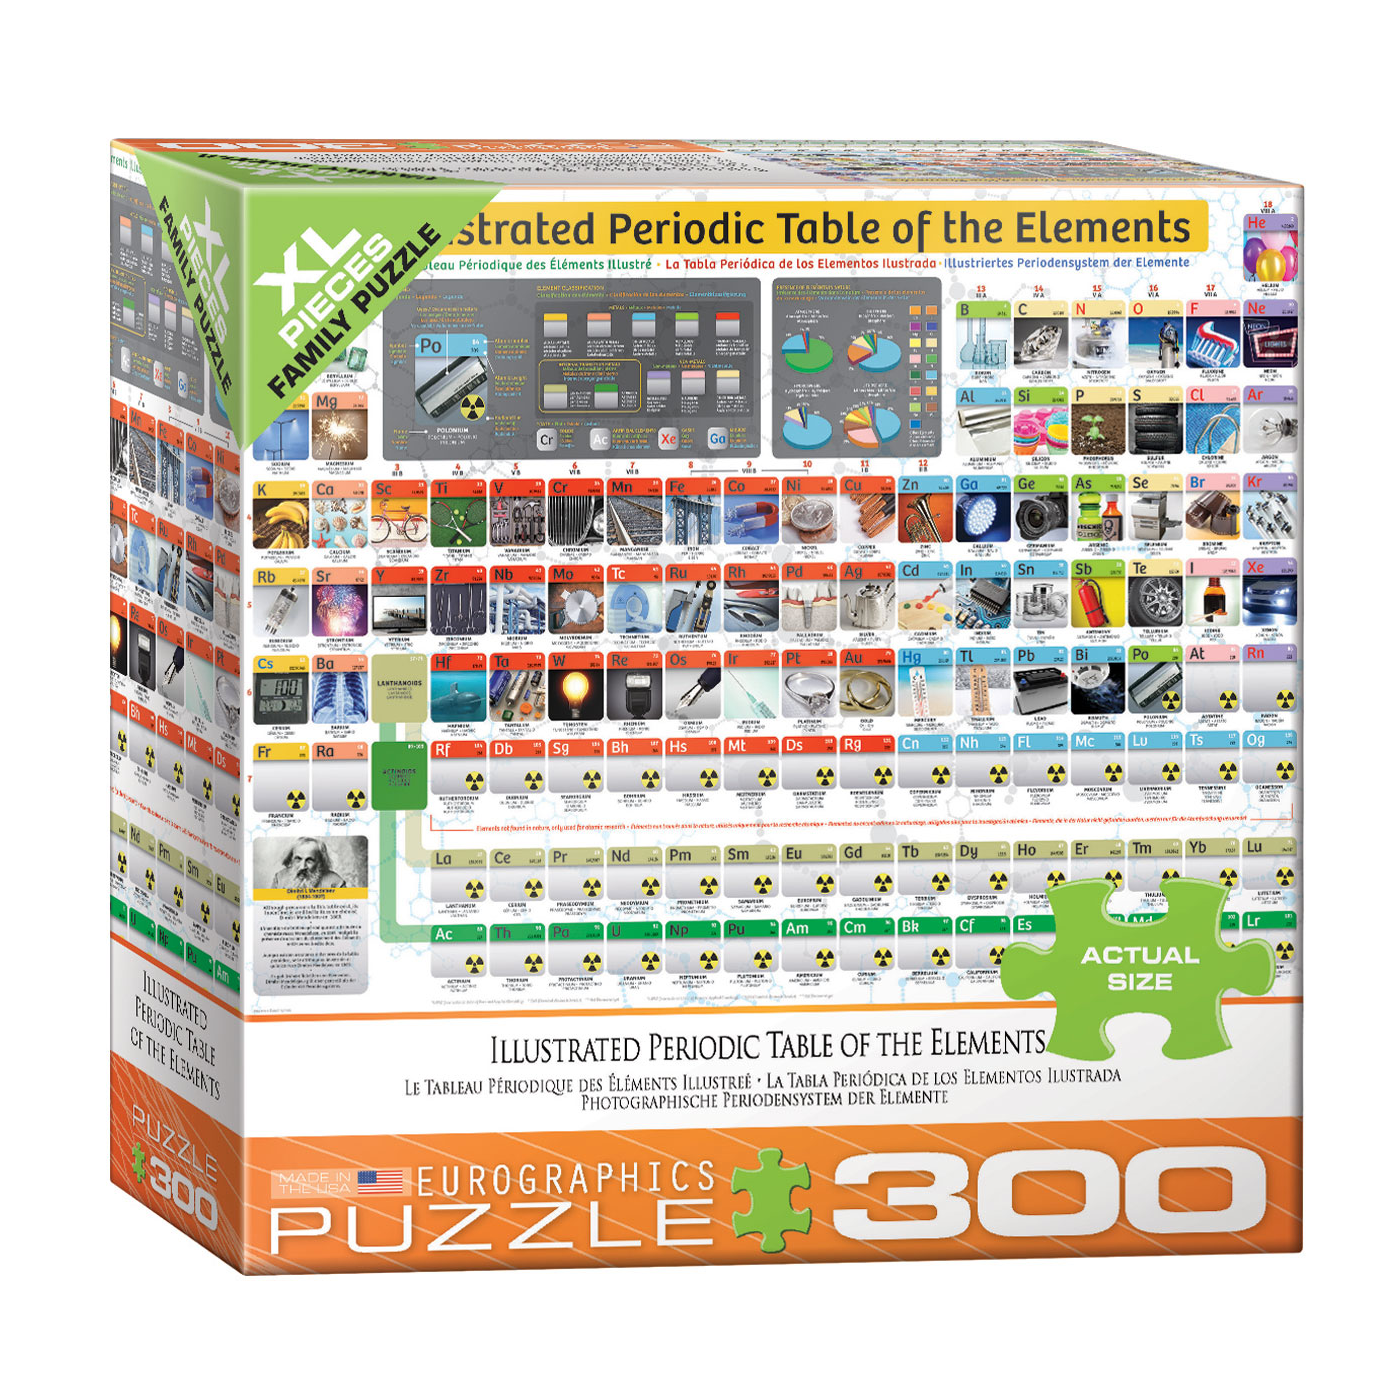 E - Illustrated Periodic Table of Elements - 300pc (Large Format) (8300-5370)